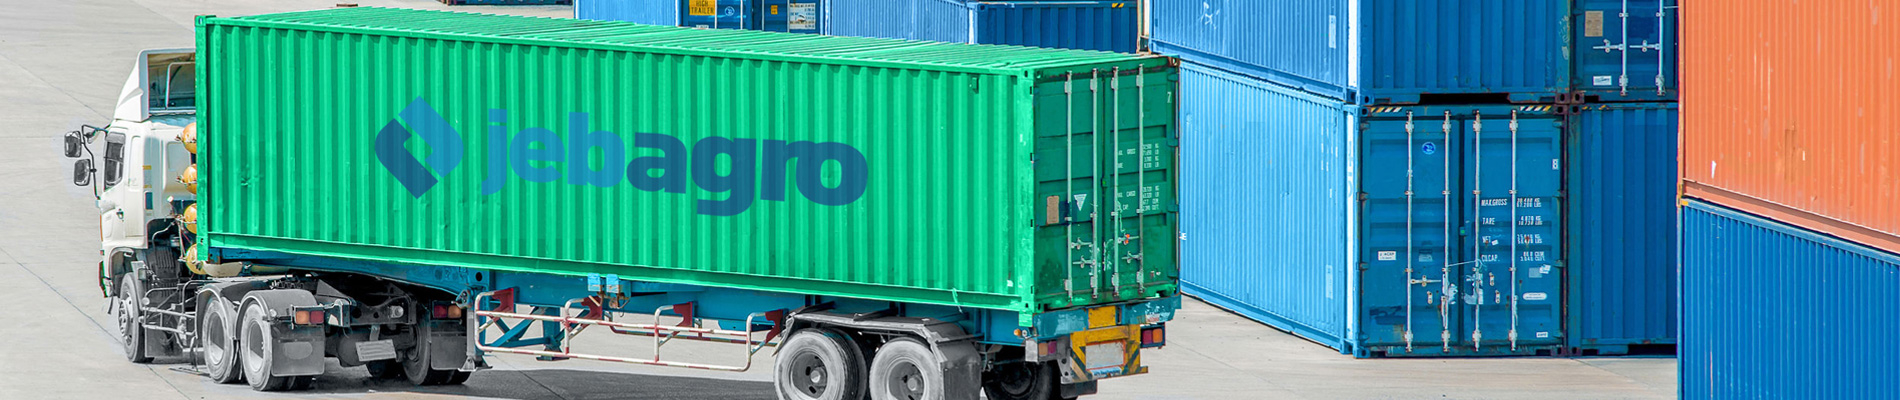 Supply chain management and logistics - Jebagro - crop